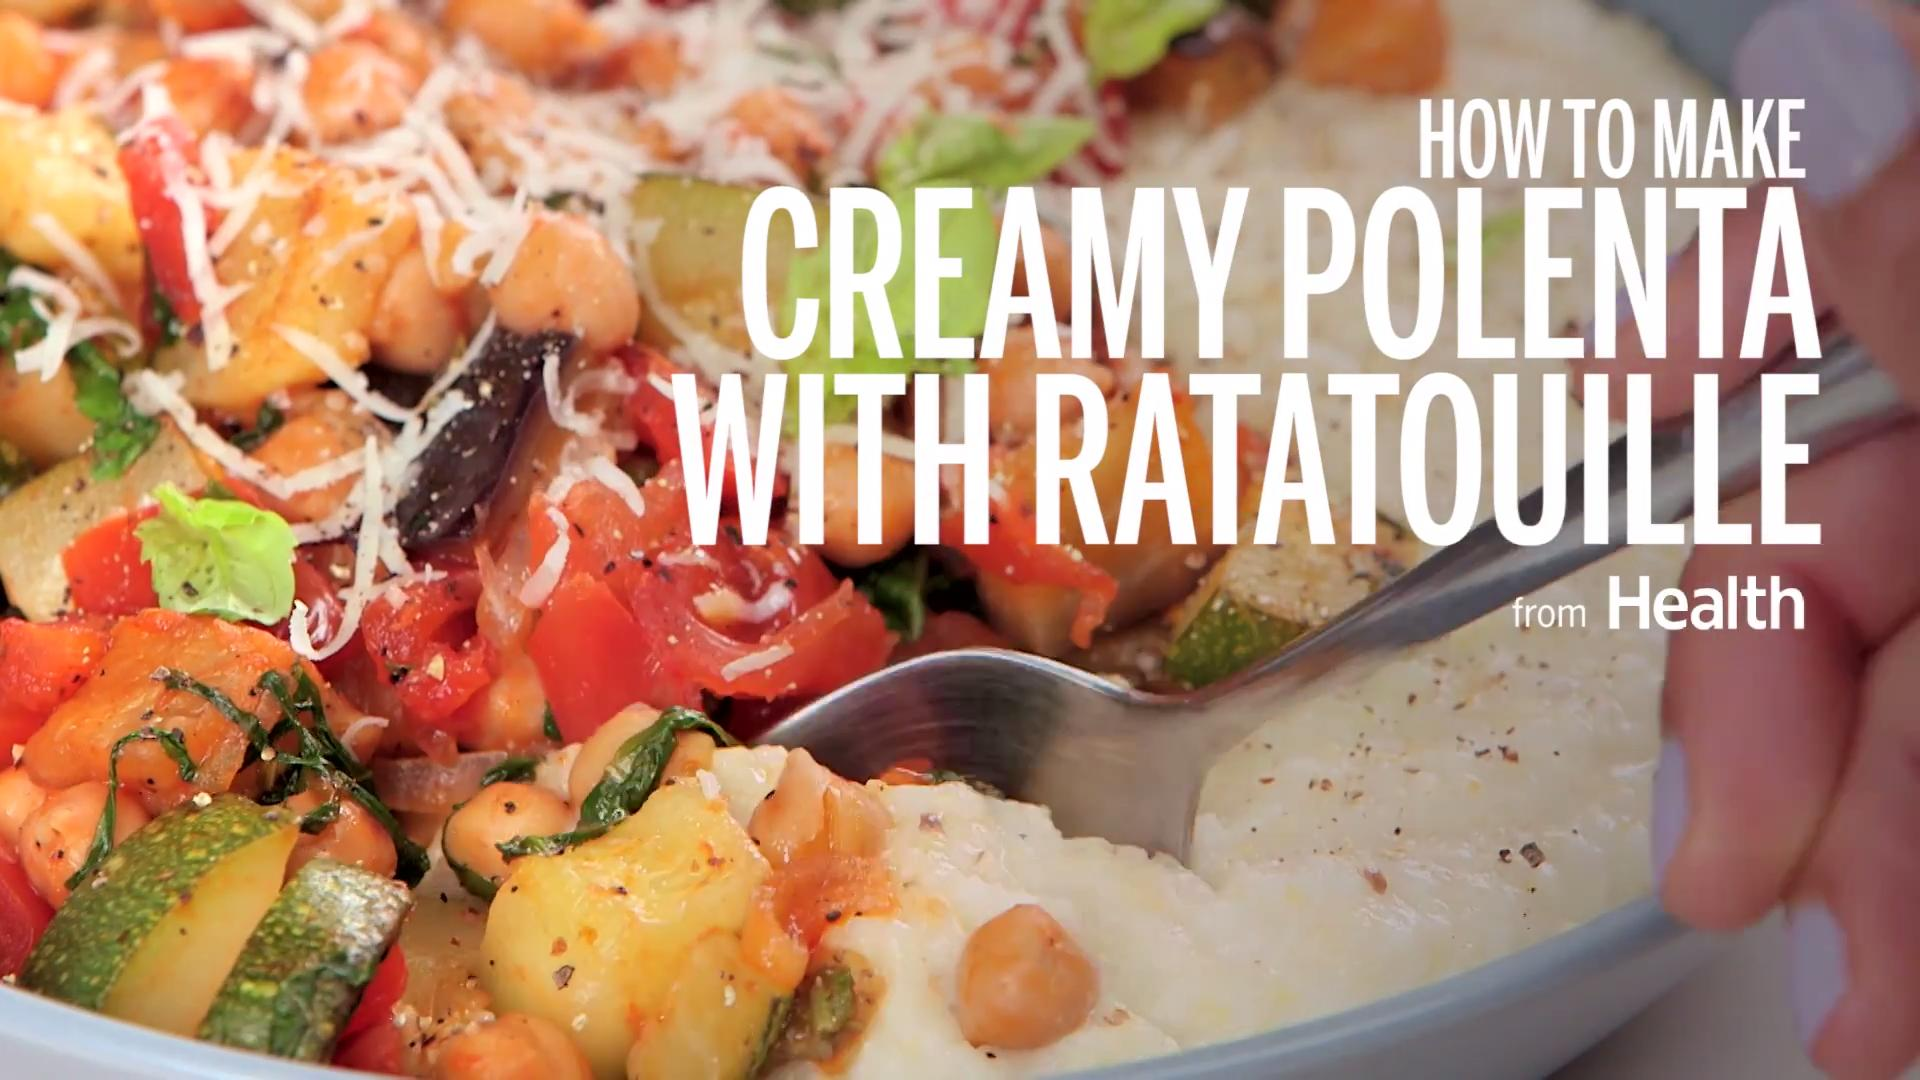 Creamy Polenta with Ratatouille